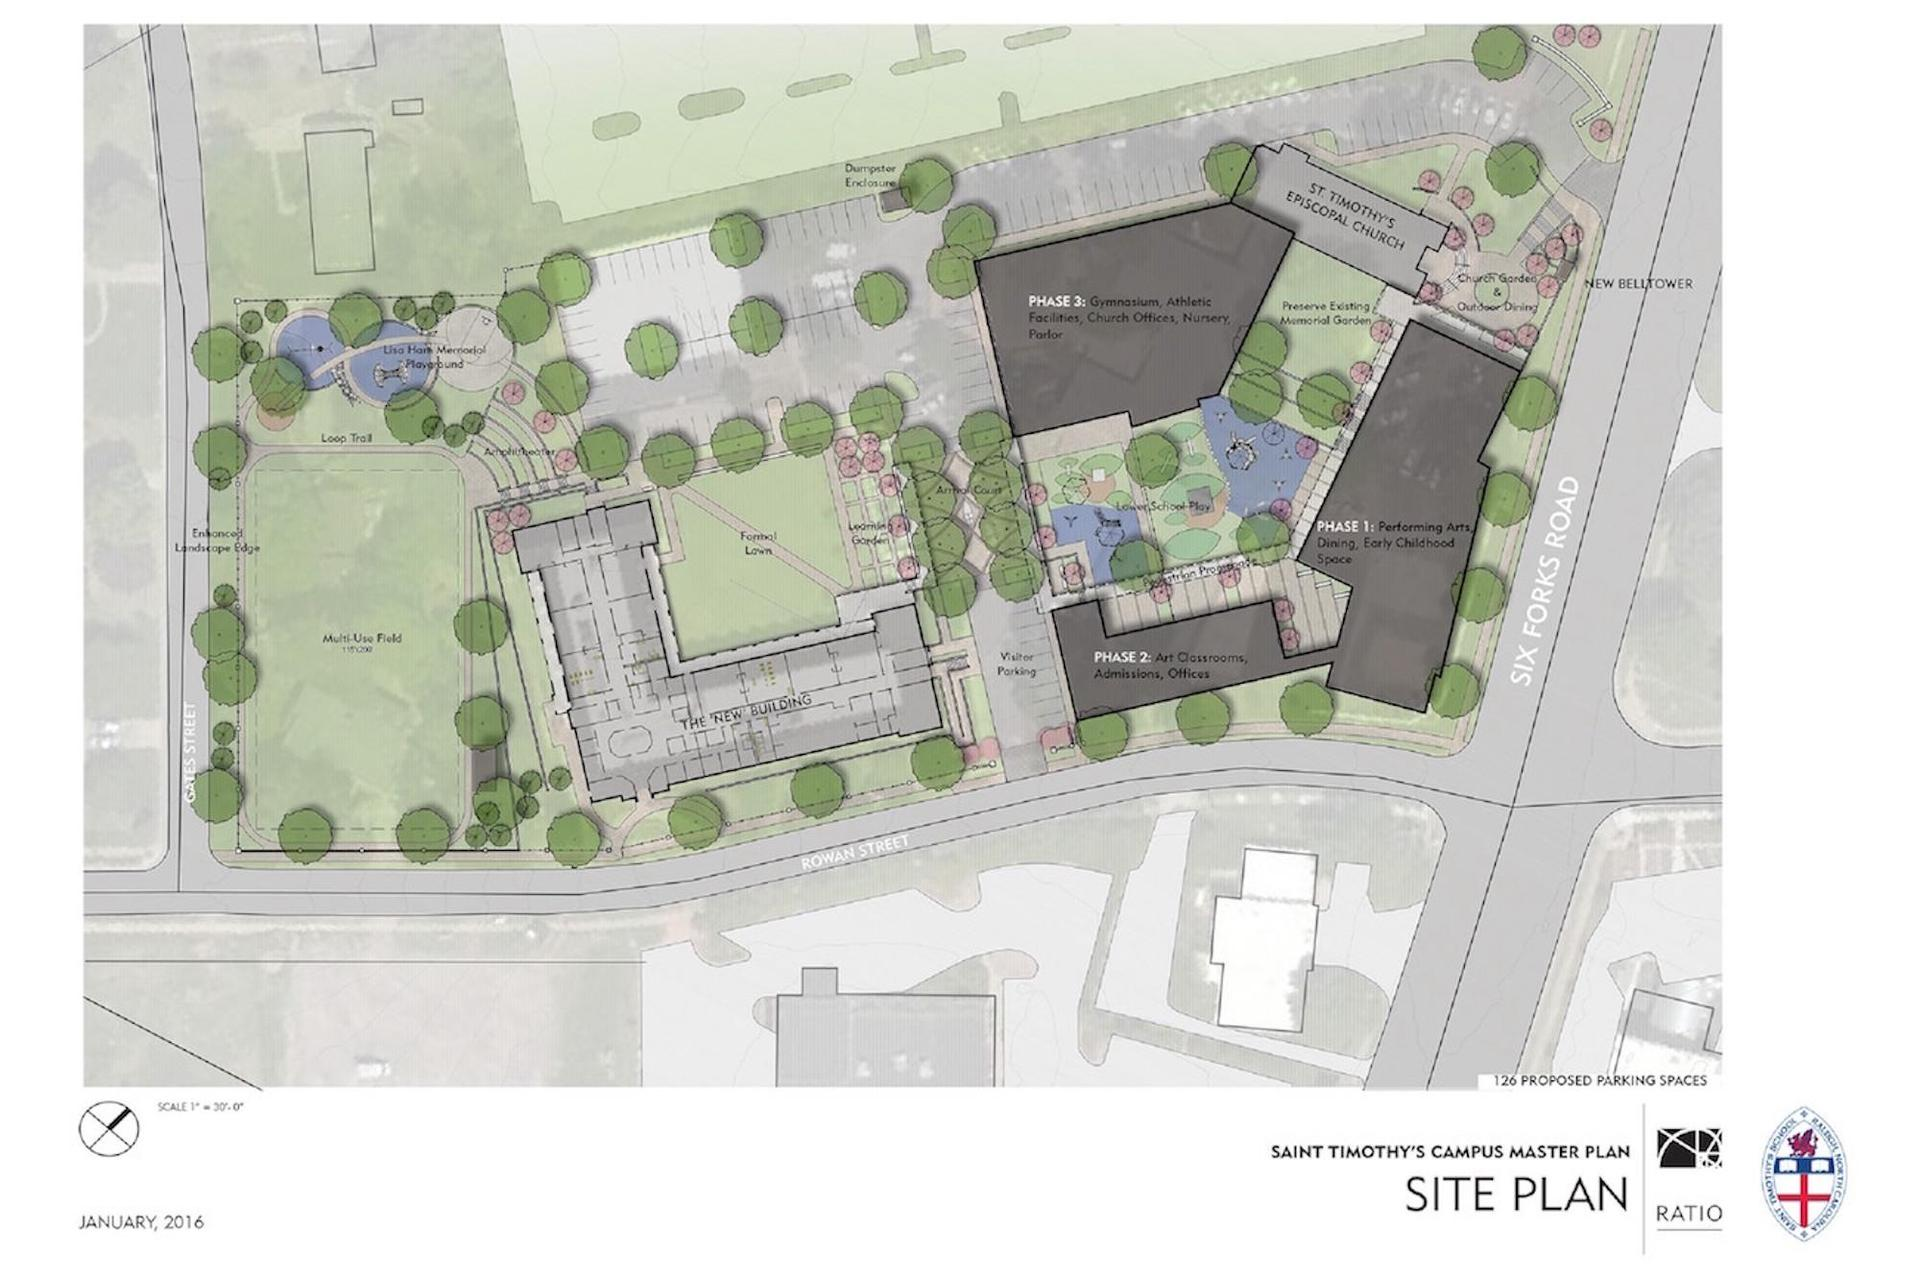 Final Site Plan of Phases 1, 2 and 3